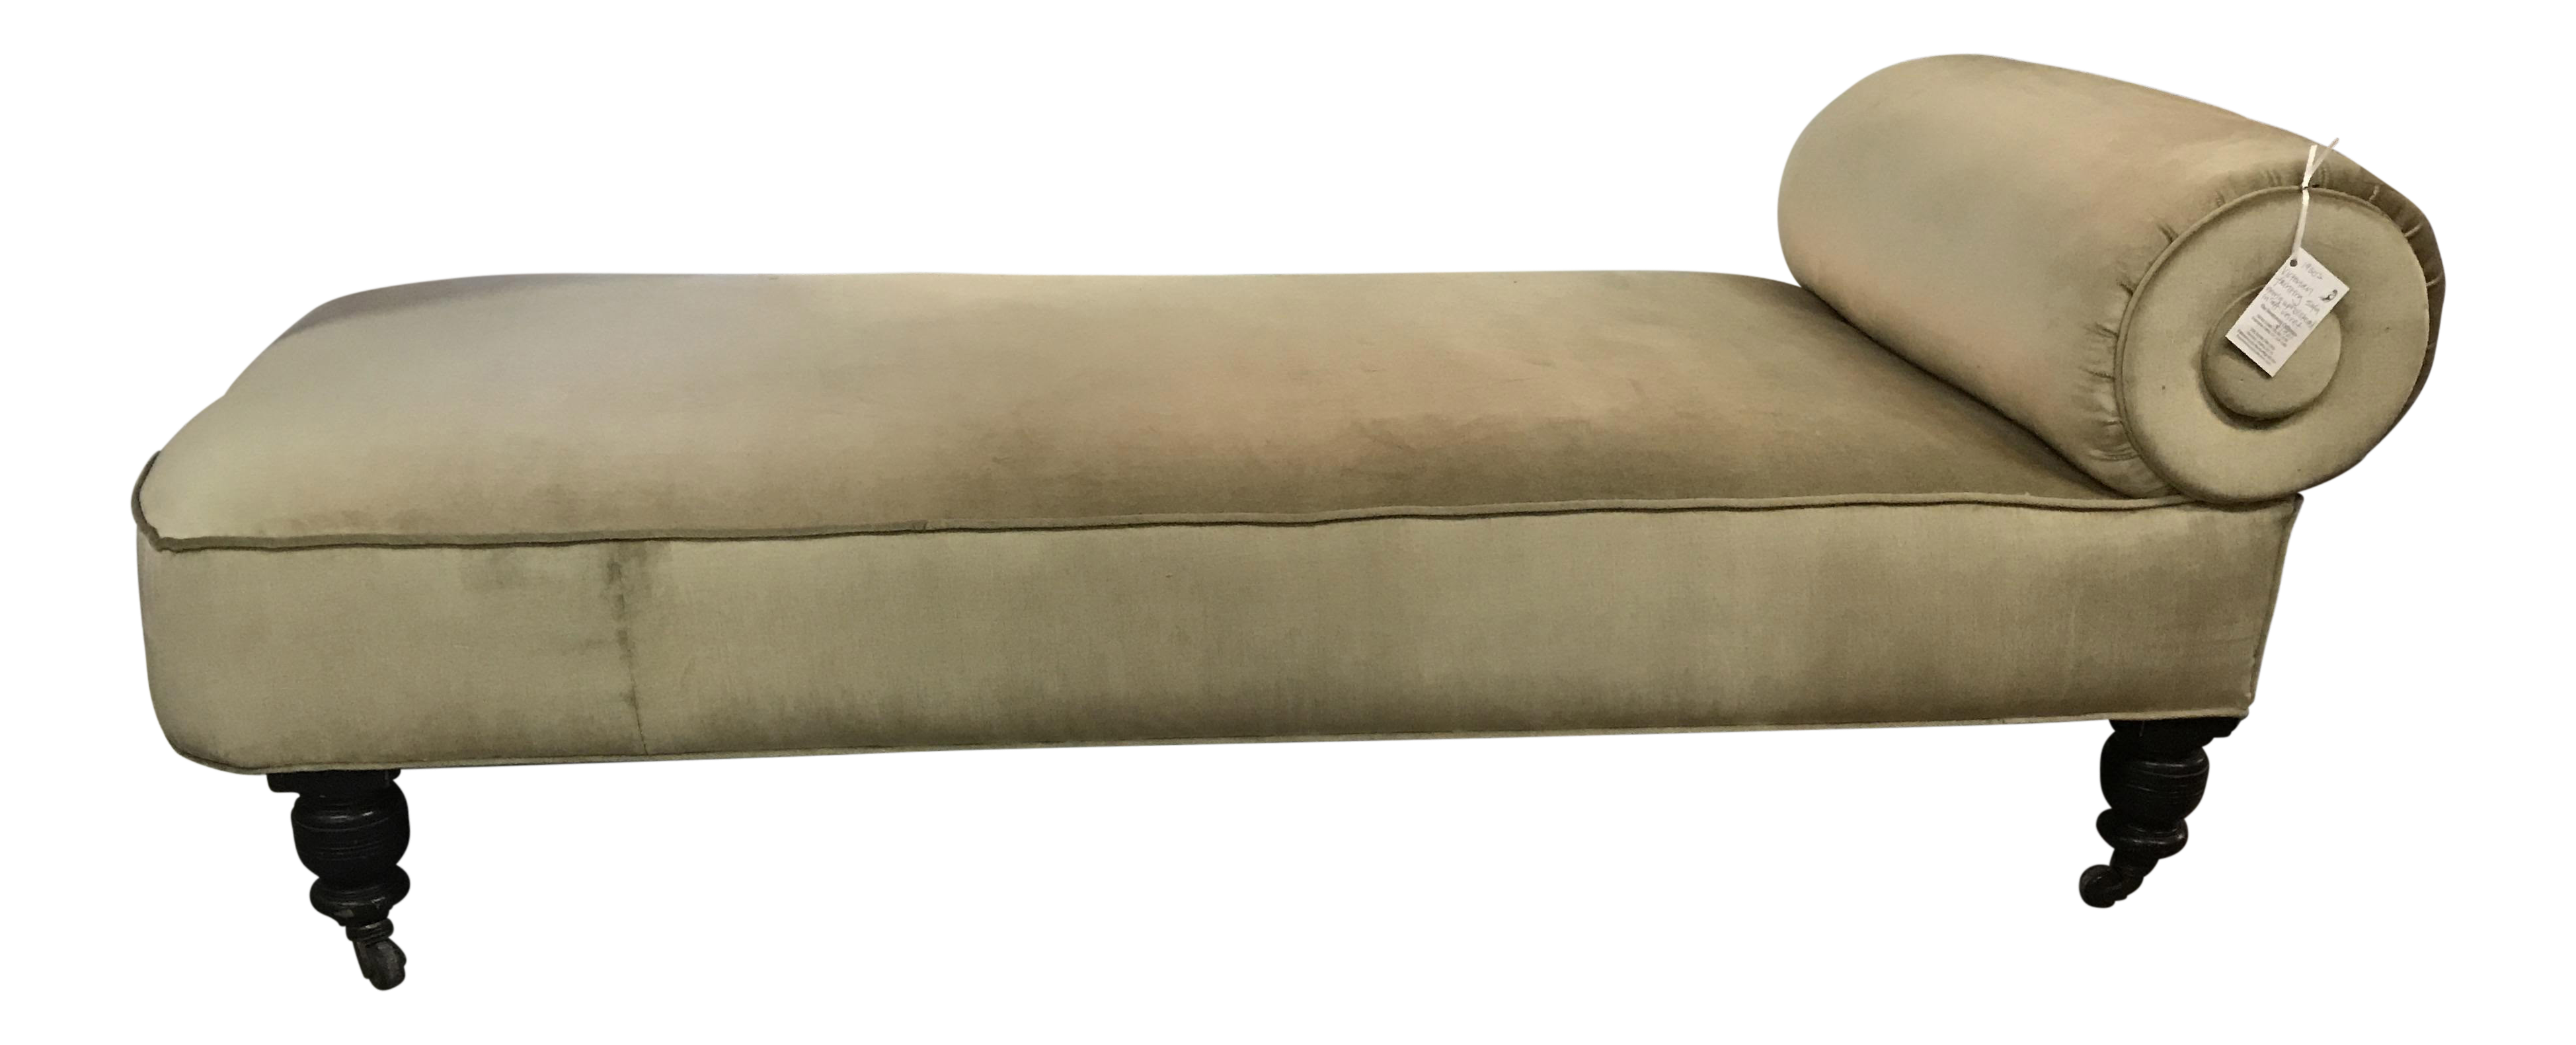 tributo sale gio id f for lounge chaise master furniture caterina longue seating ponti licitra longues velvet bonbon at a